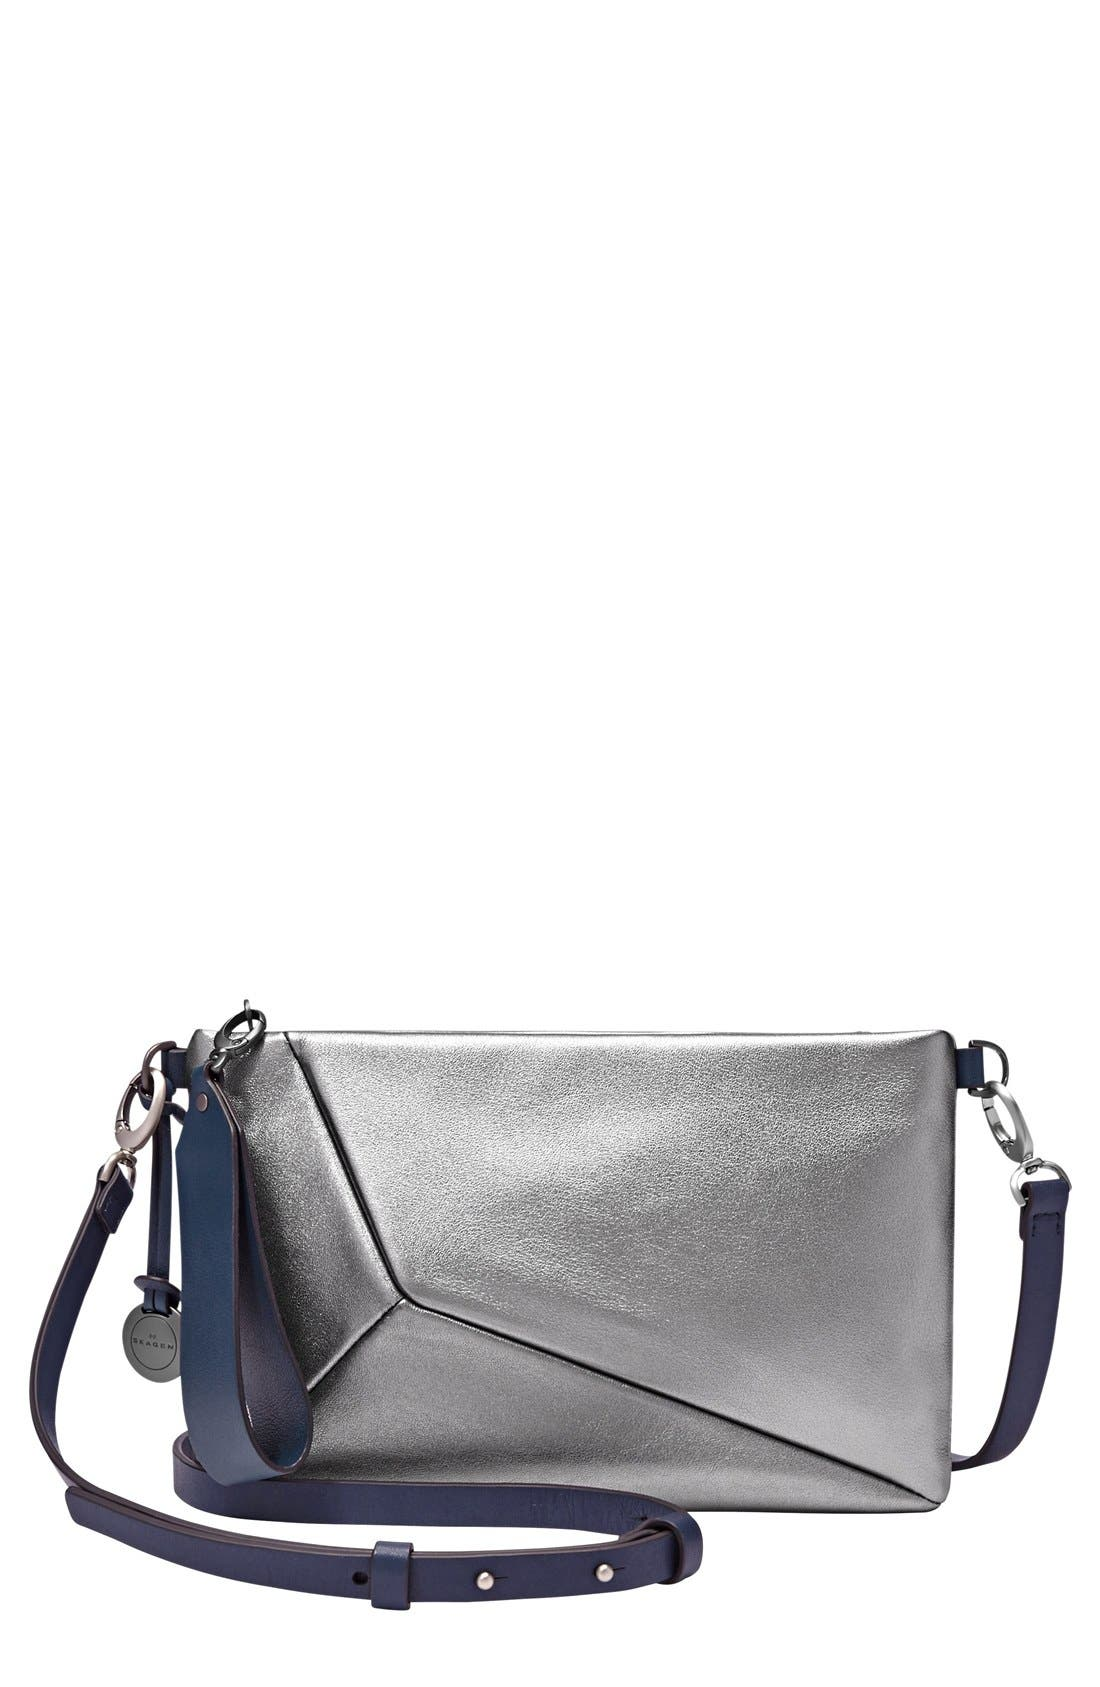 Alternate Image 1 Selected - Skagen Small Metallic Leather Crossbody Clutch